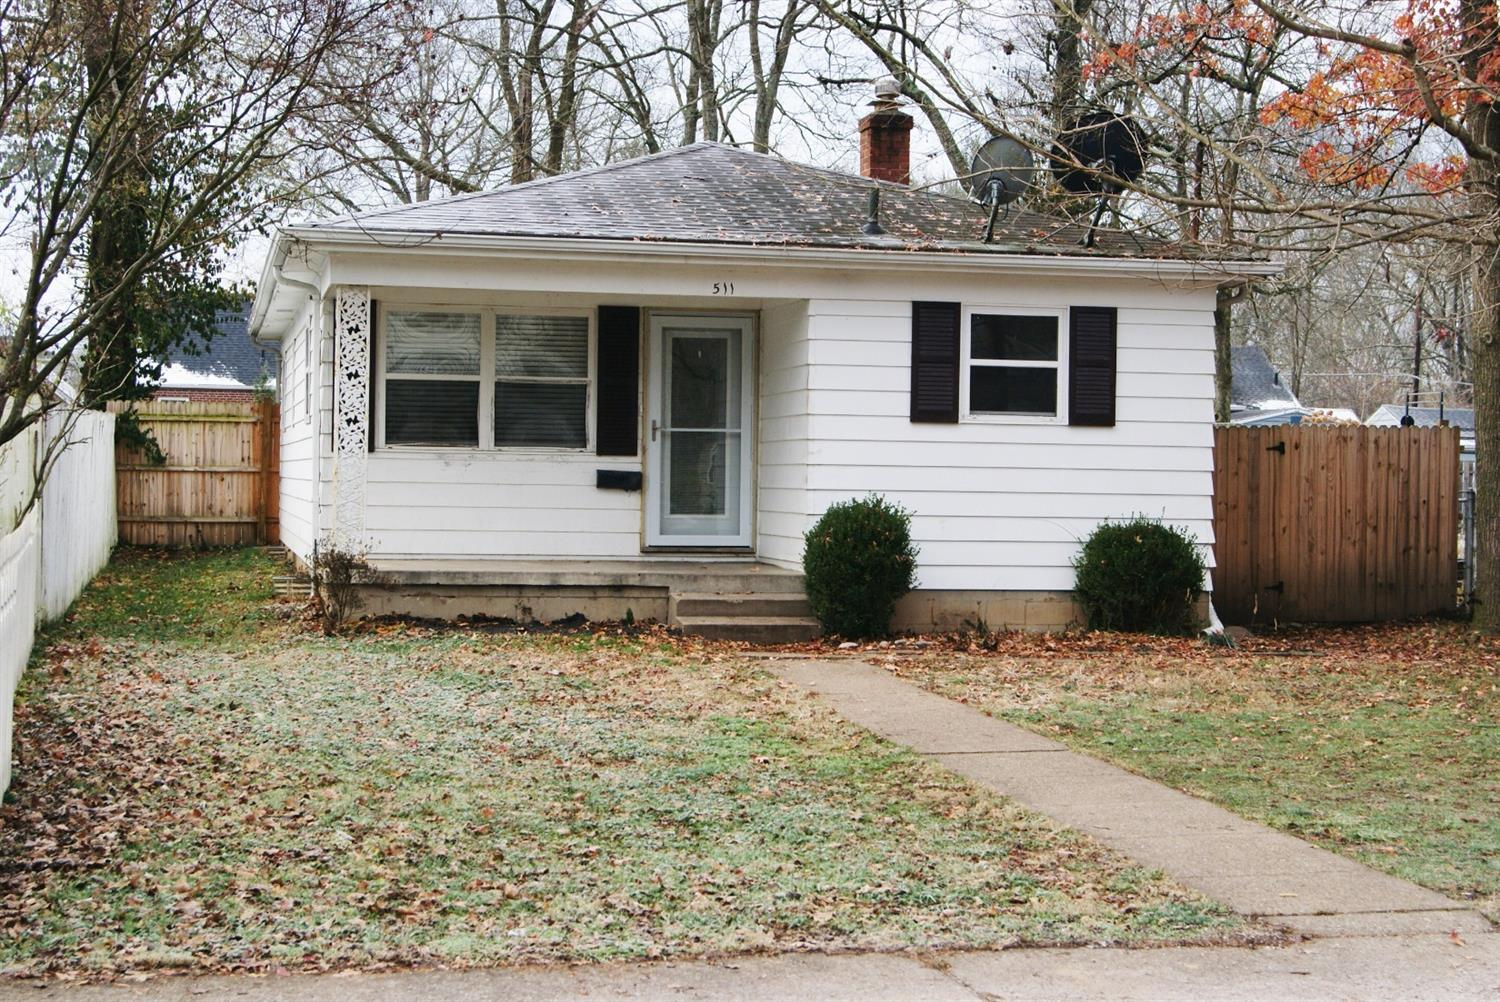 511 Dot Avenue, Milford, OH 45150